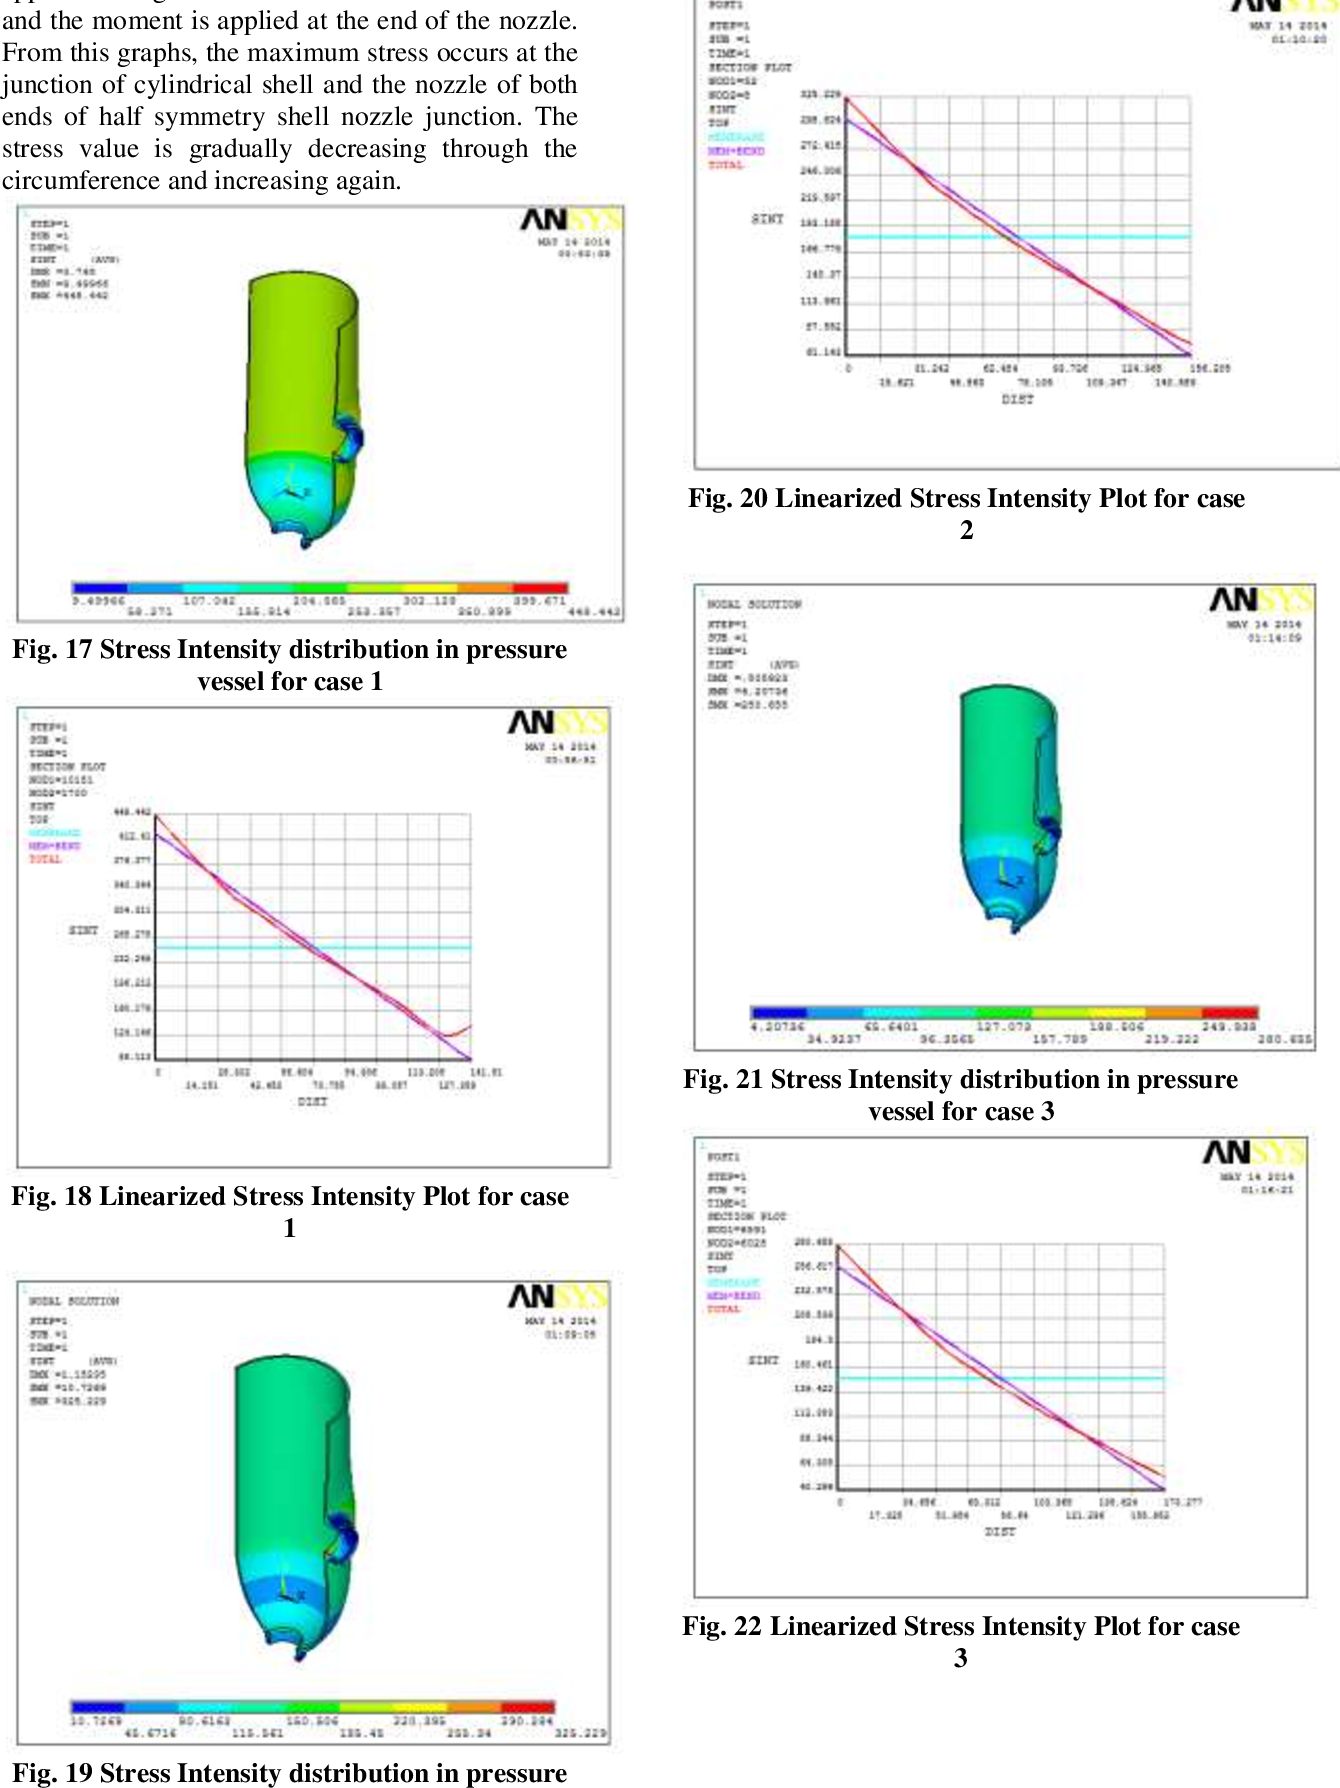 International Journal Of Engineering Sciences Research Technology Design Investigation Into The Stress At The Base Of A Nozzle Of A Pressure Vessel Semantic Scholar